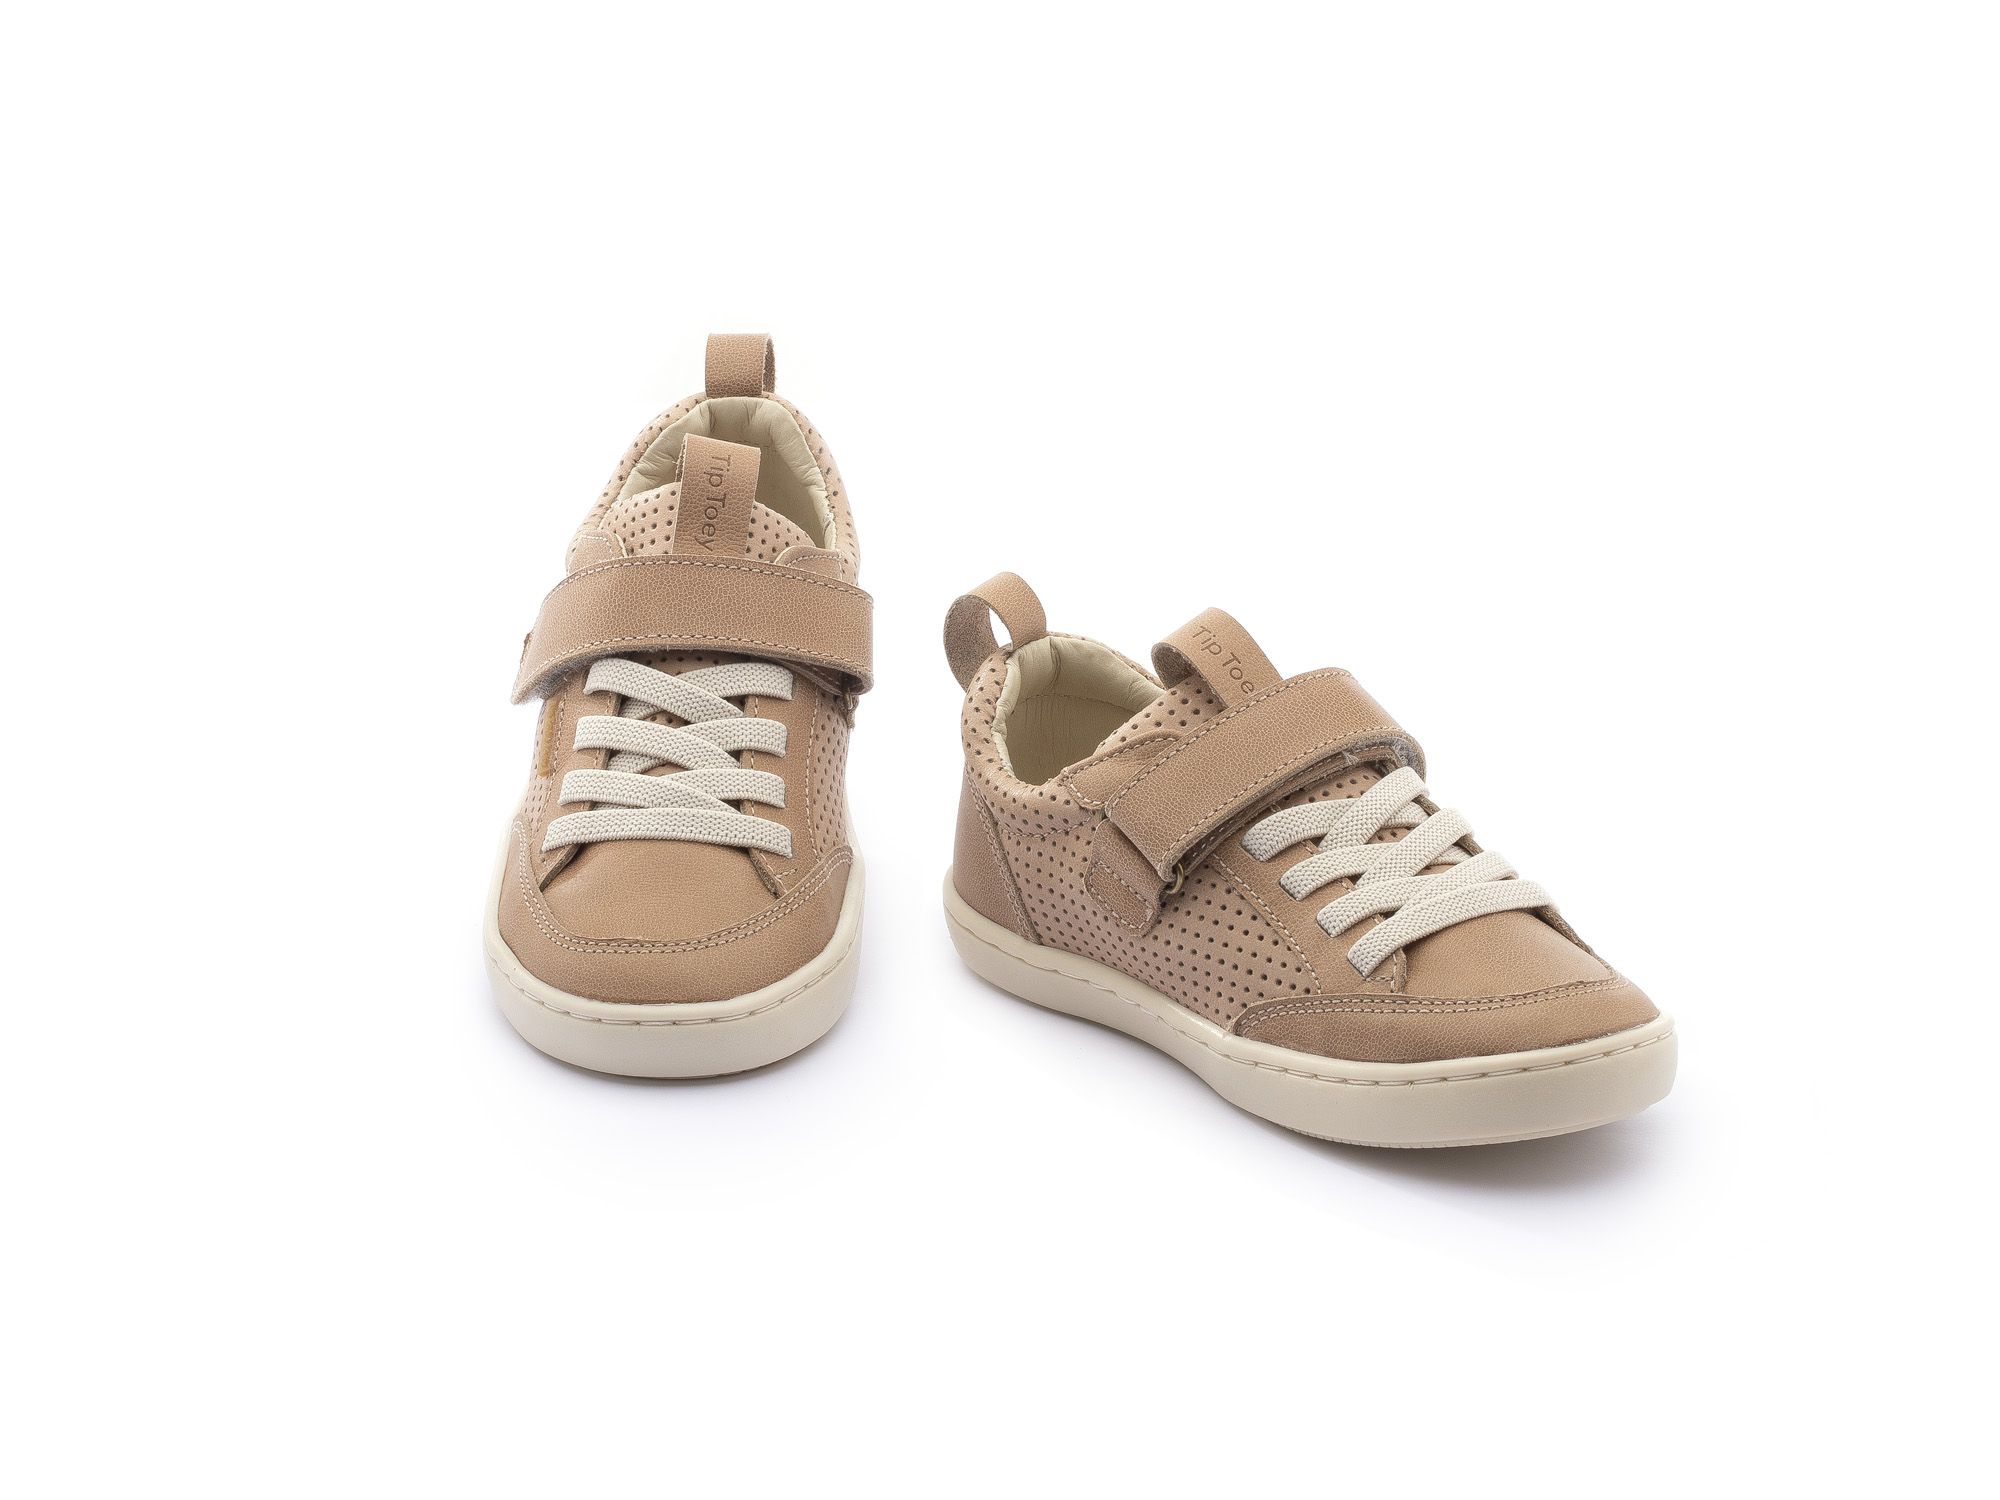 Sneaker Casual Little Urban Sand/ Sand Holes Toddler 2 à 4 anos - 2